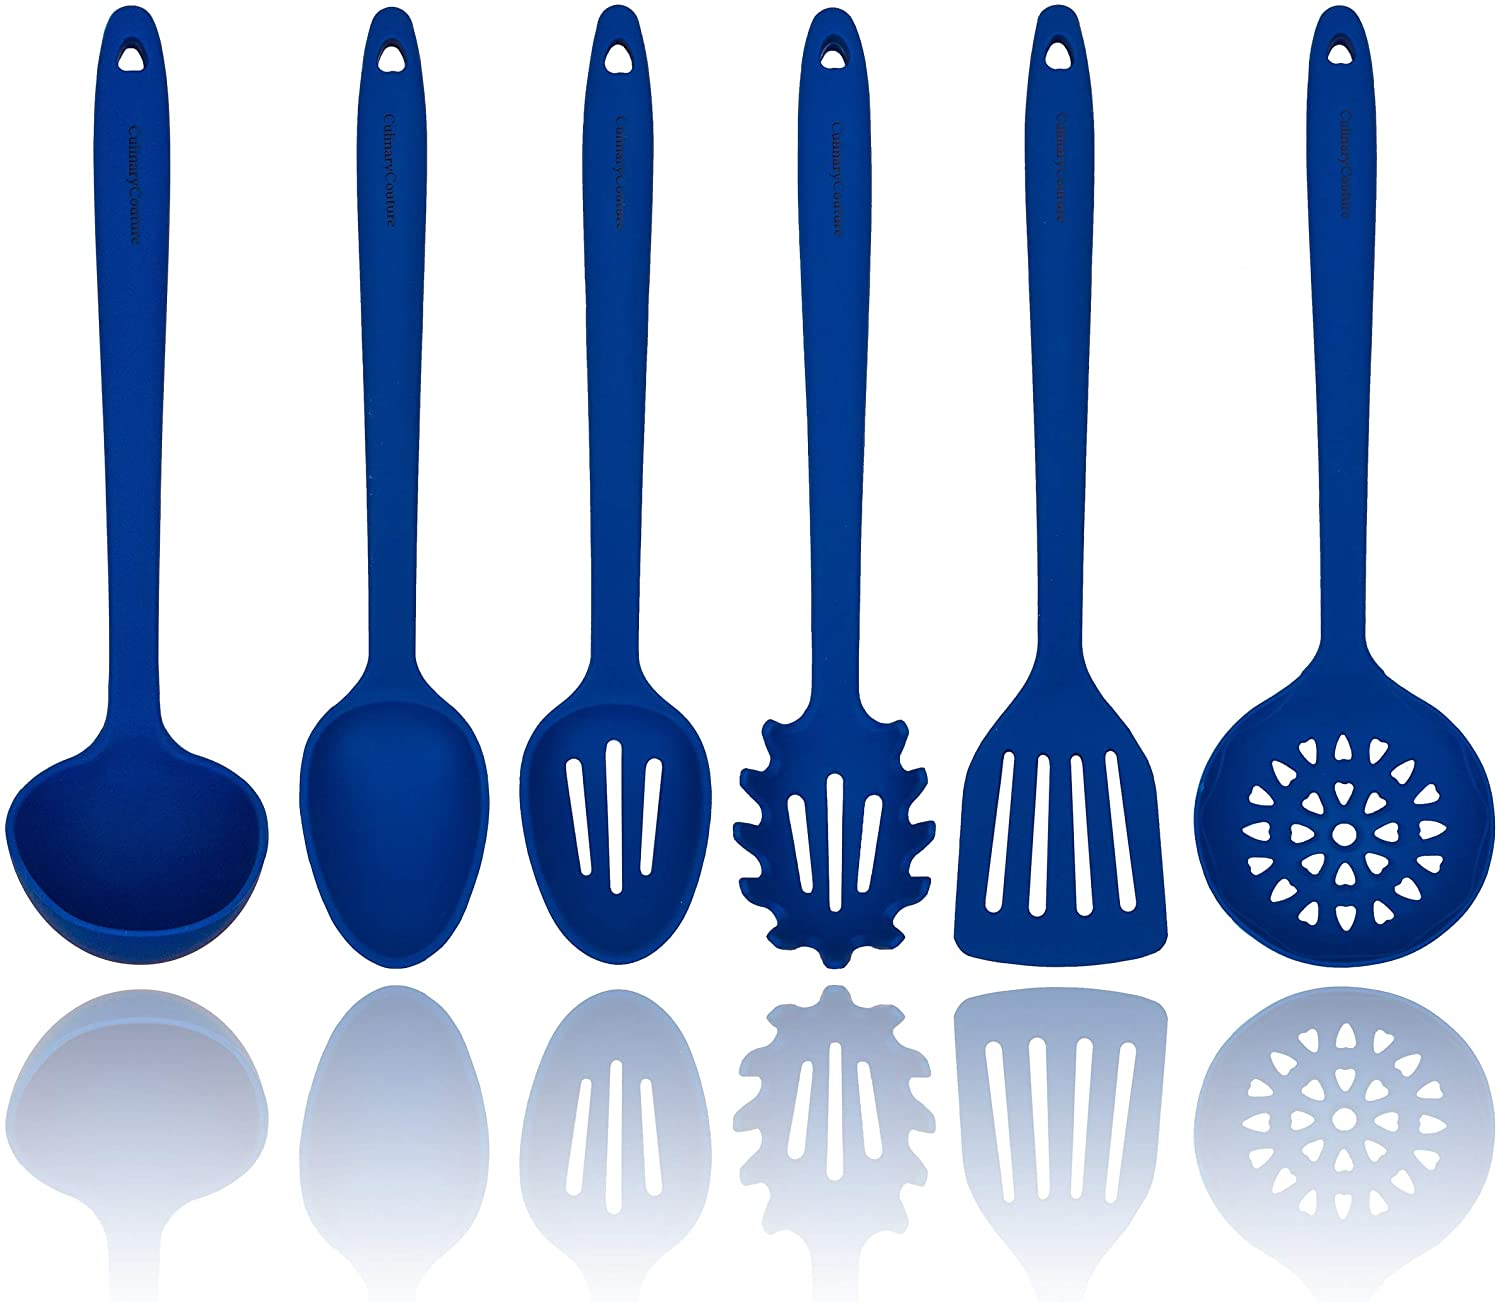 Blue Silicone Cooking Utensils Set – Sturdy Steel Inner Core – Spatula, Mixing & Slotted Spoon, Ladle, Pasta Server, Drainer – Heat Resistant Kitchen Tools - Bonus Recipe Ebook